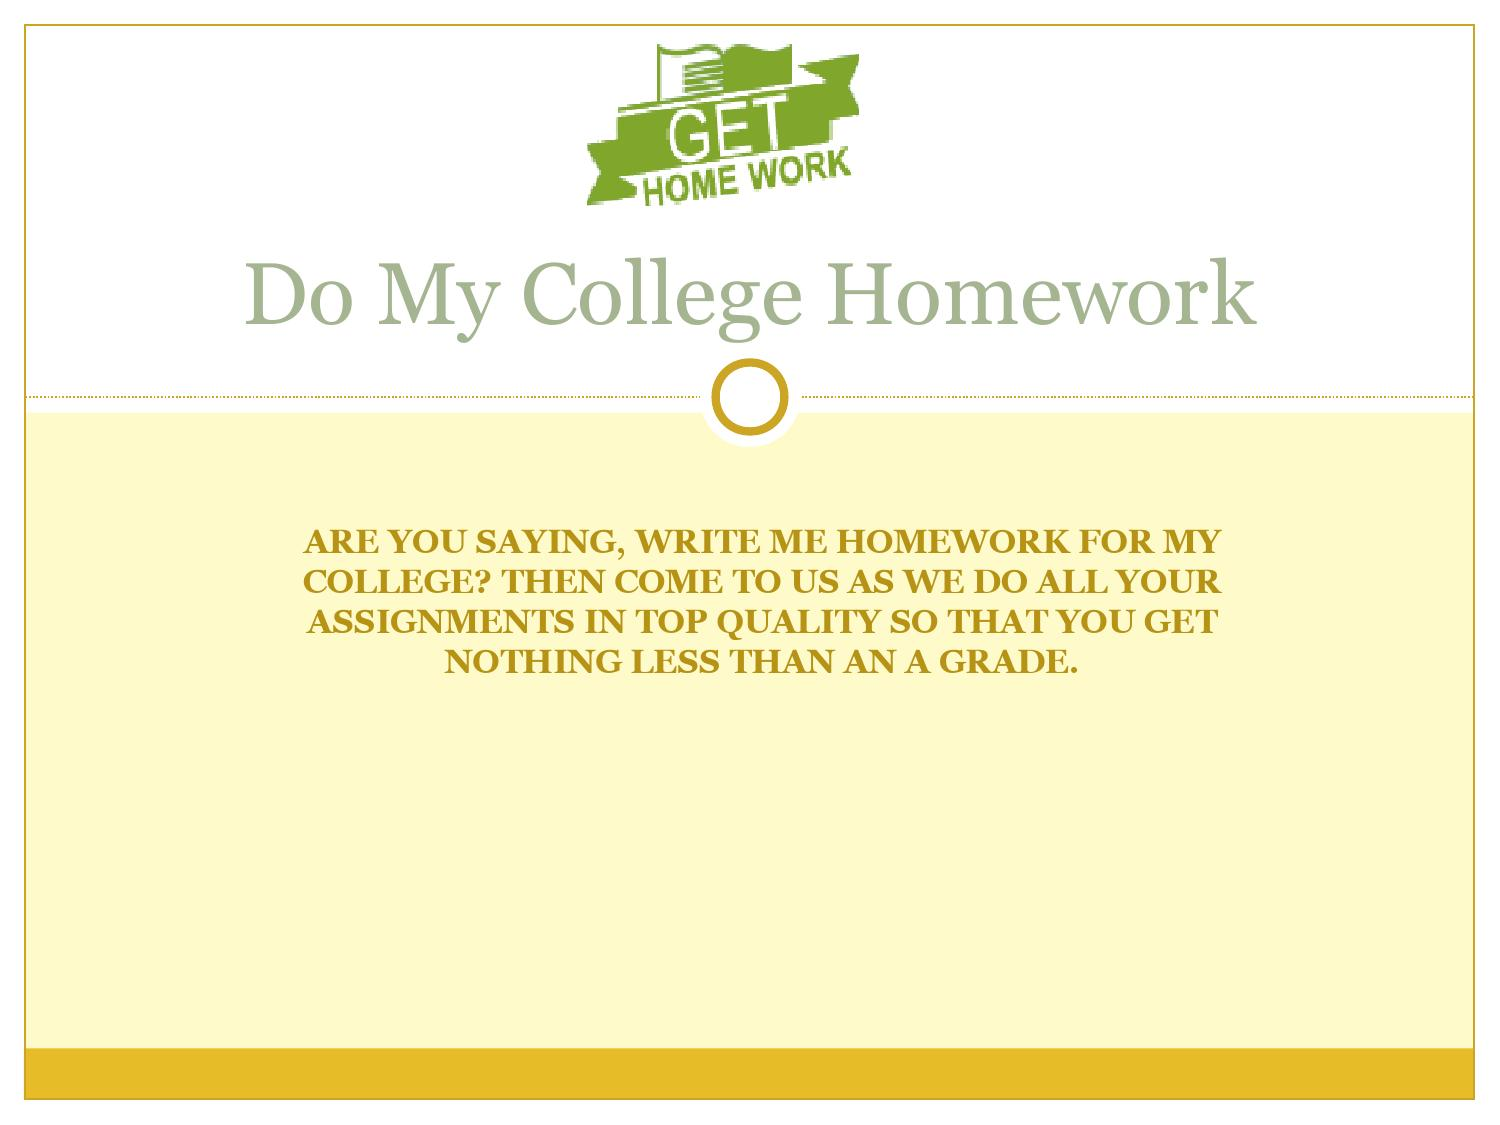 Do you get homework in college